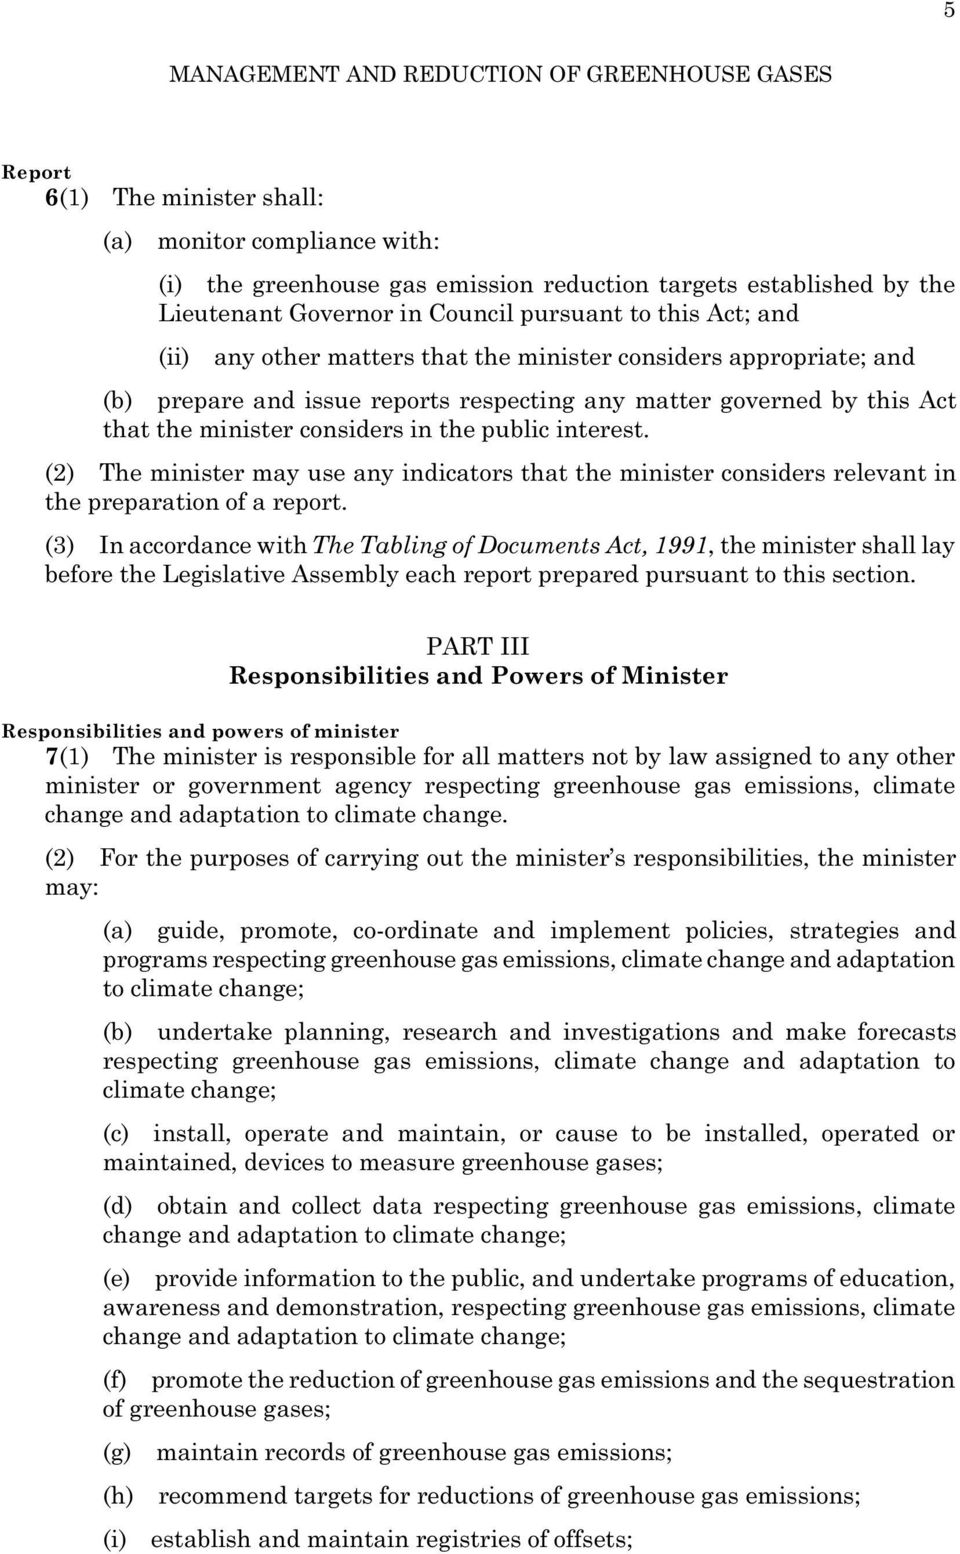 (2) The minister may use any indicators that the minister considers relevant in the preparation of a report.